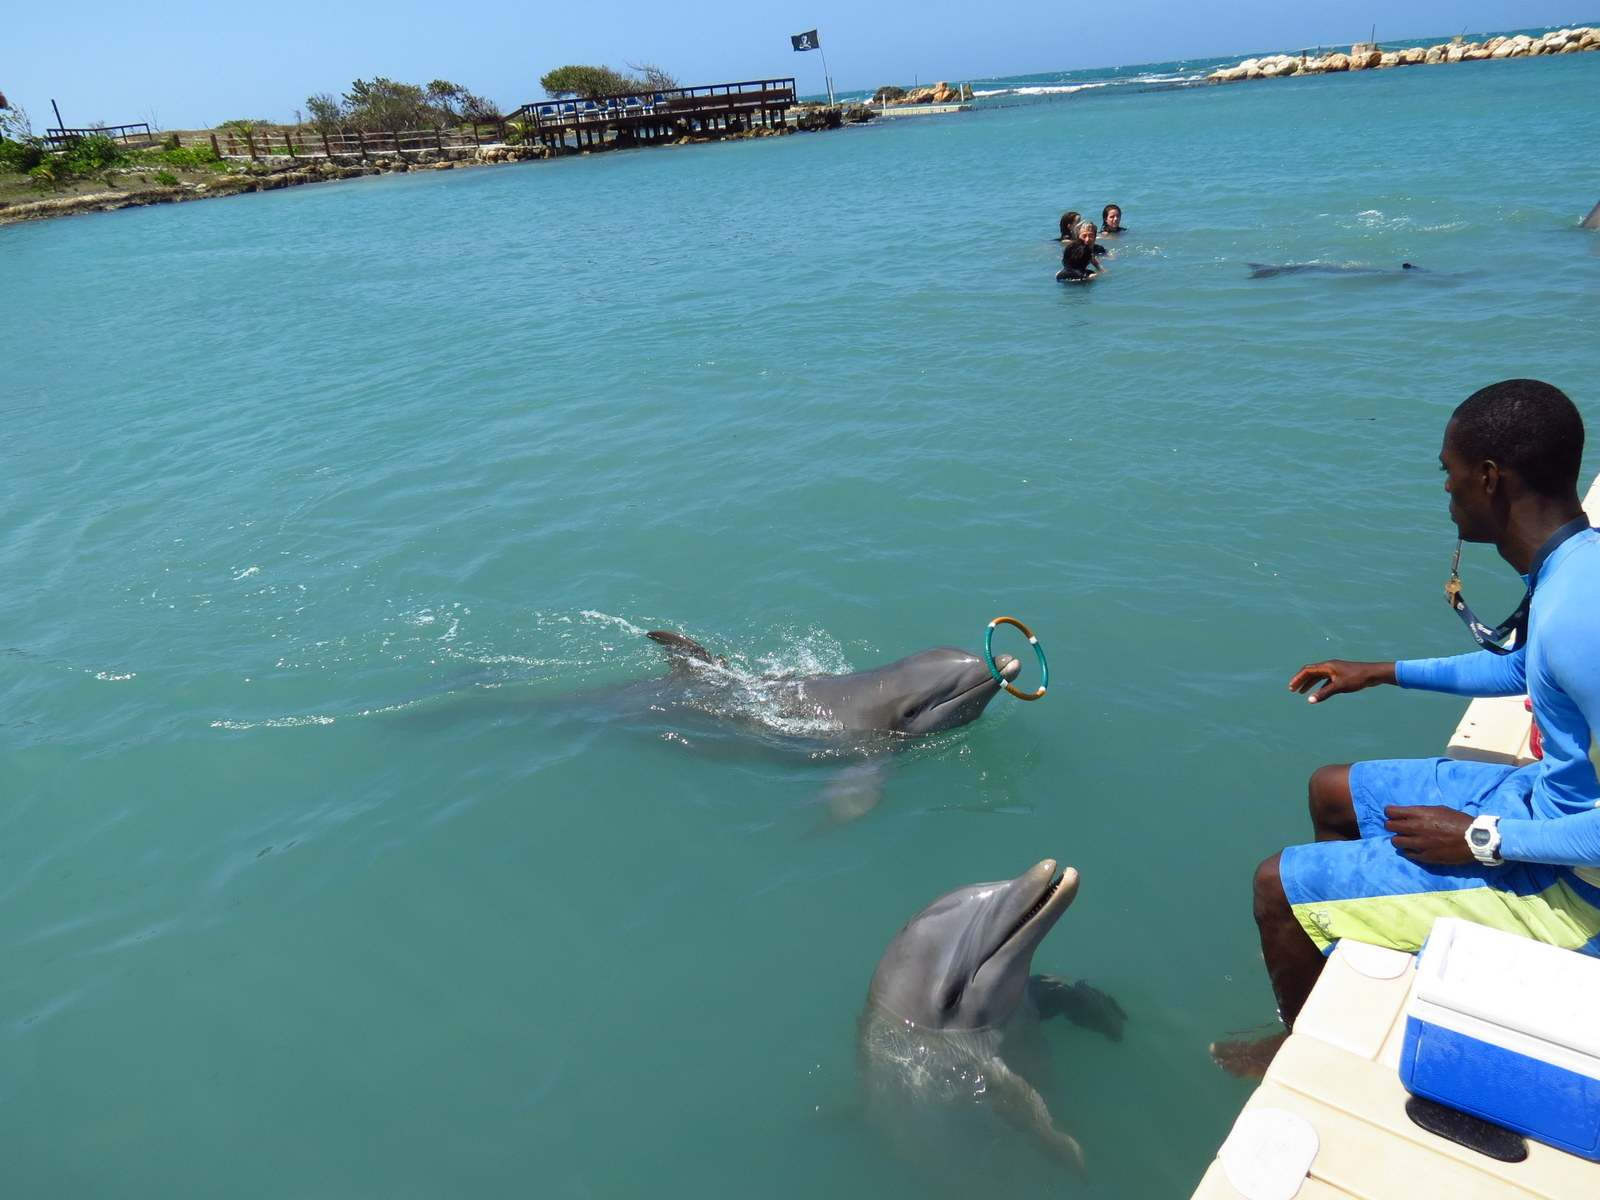 dolphins cove jamaica Swimming with Dolphins in Jamaica